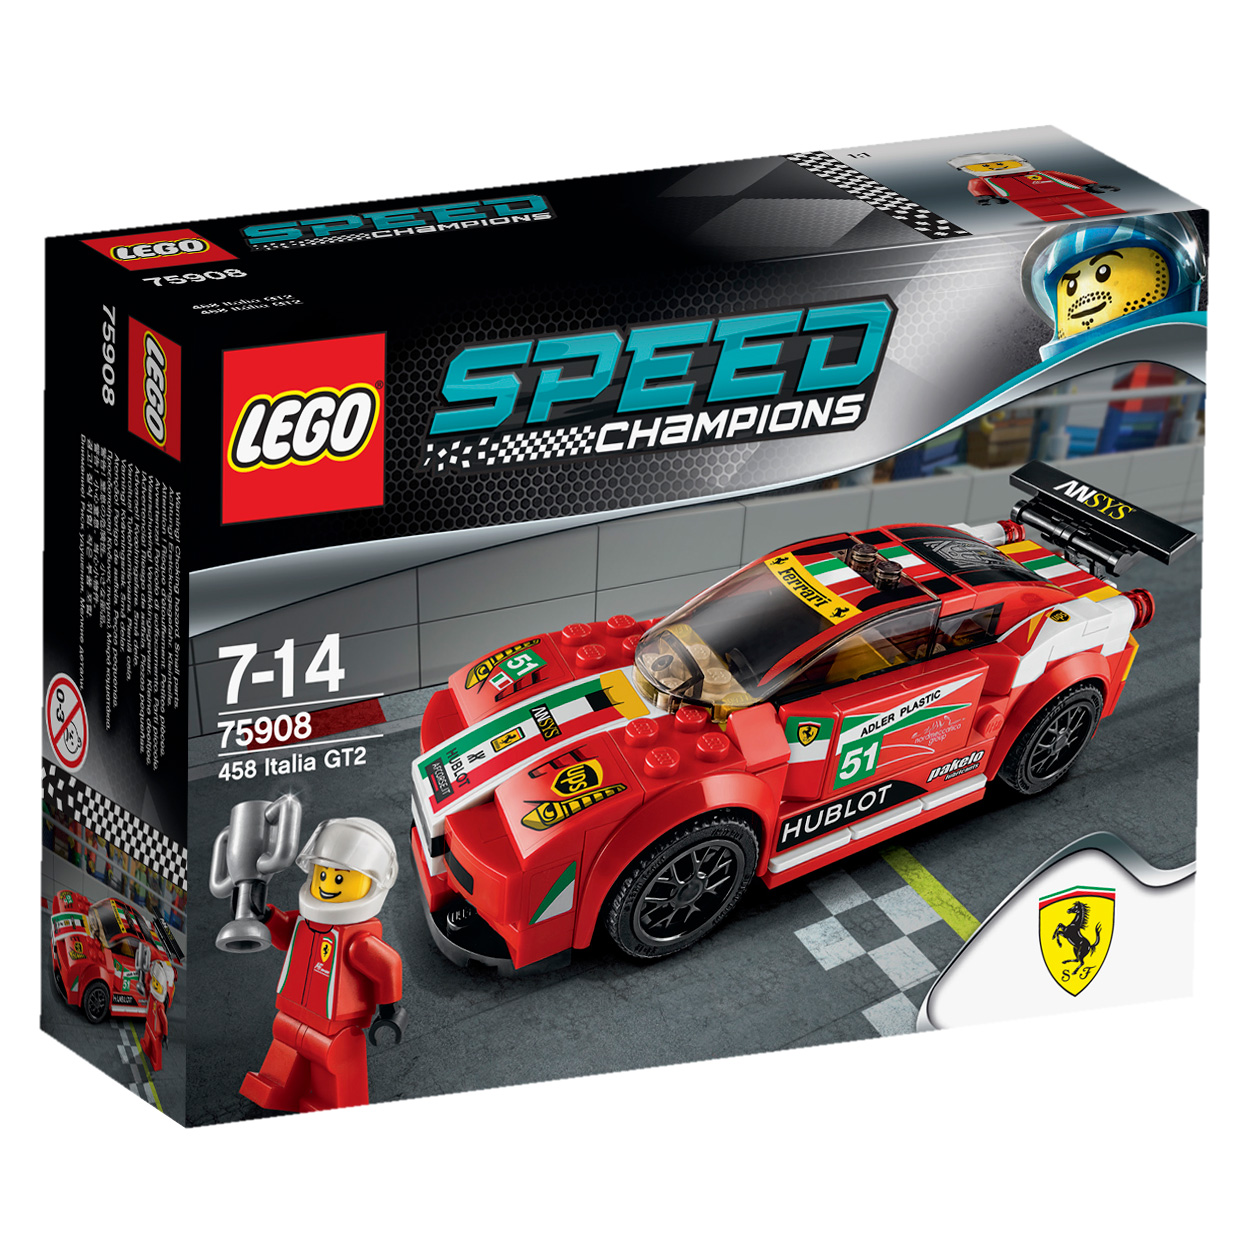 lego 75908 speed champions ferrari 458 italia gt2 comparer avec. Black Bedroom Furniture Sets. Home Design Ideas